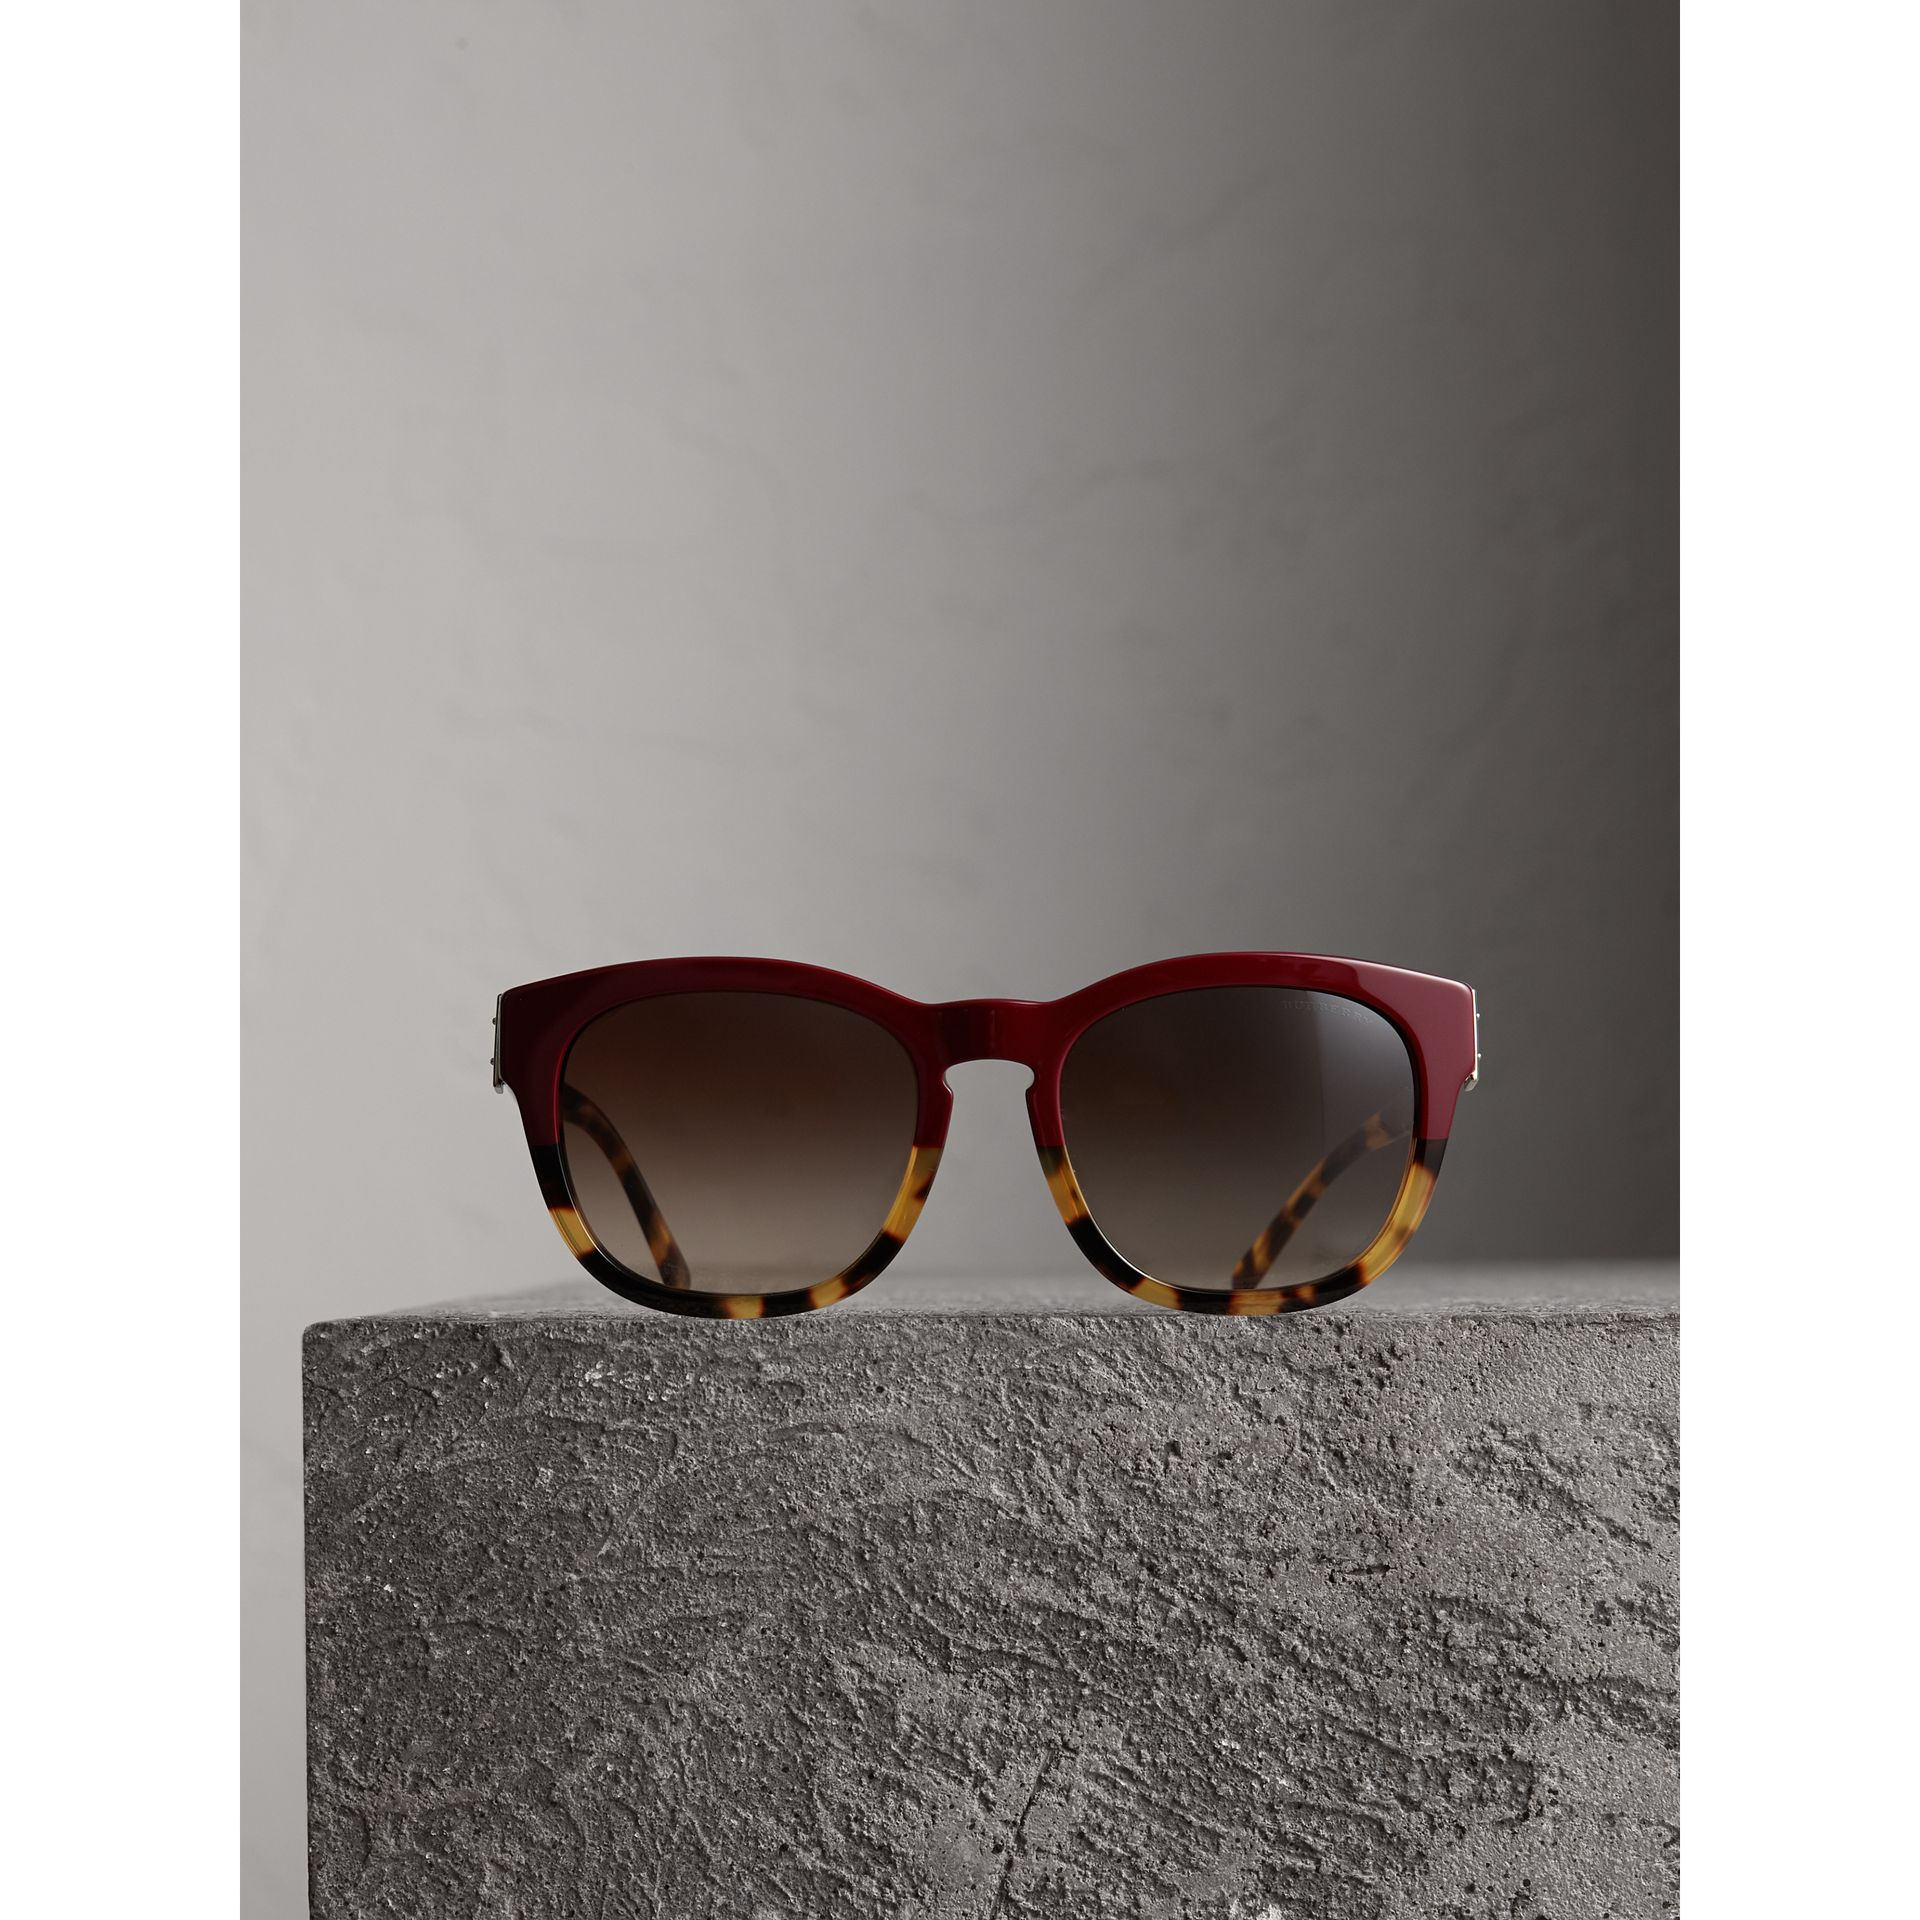 Buckle Detail Square Frame Sunglasses in Burgundy - Women | Burberry United Kingdom - gallery image 3